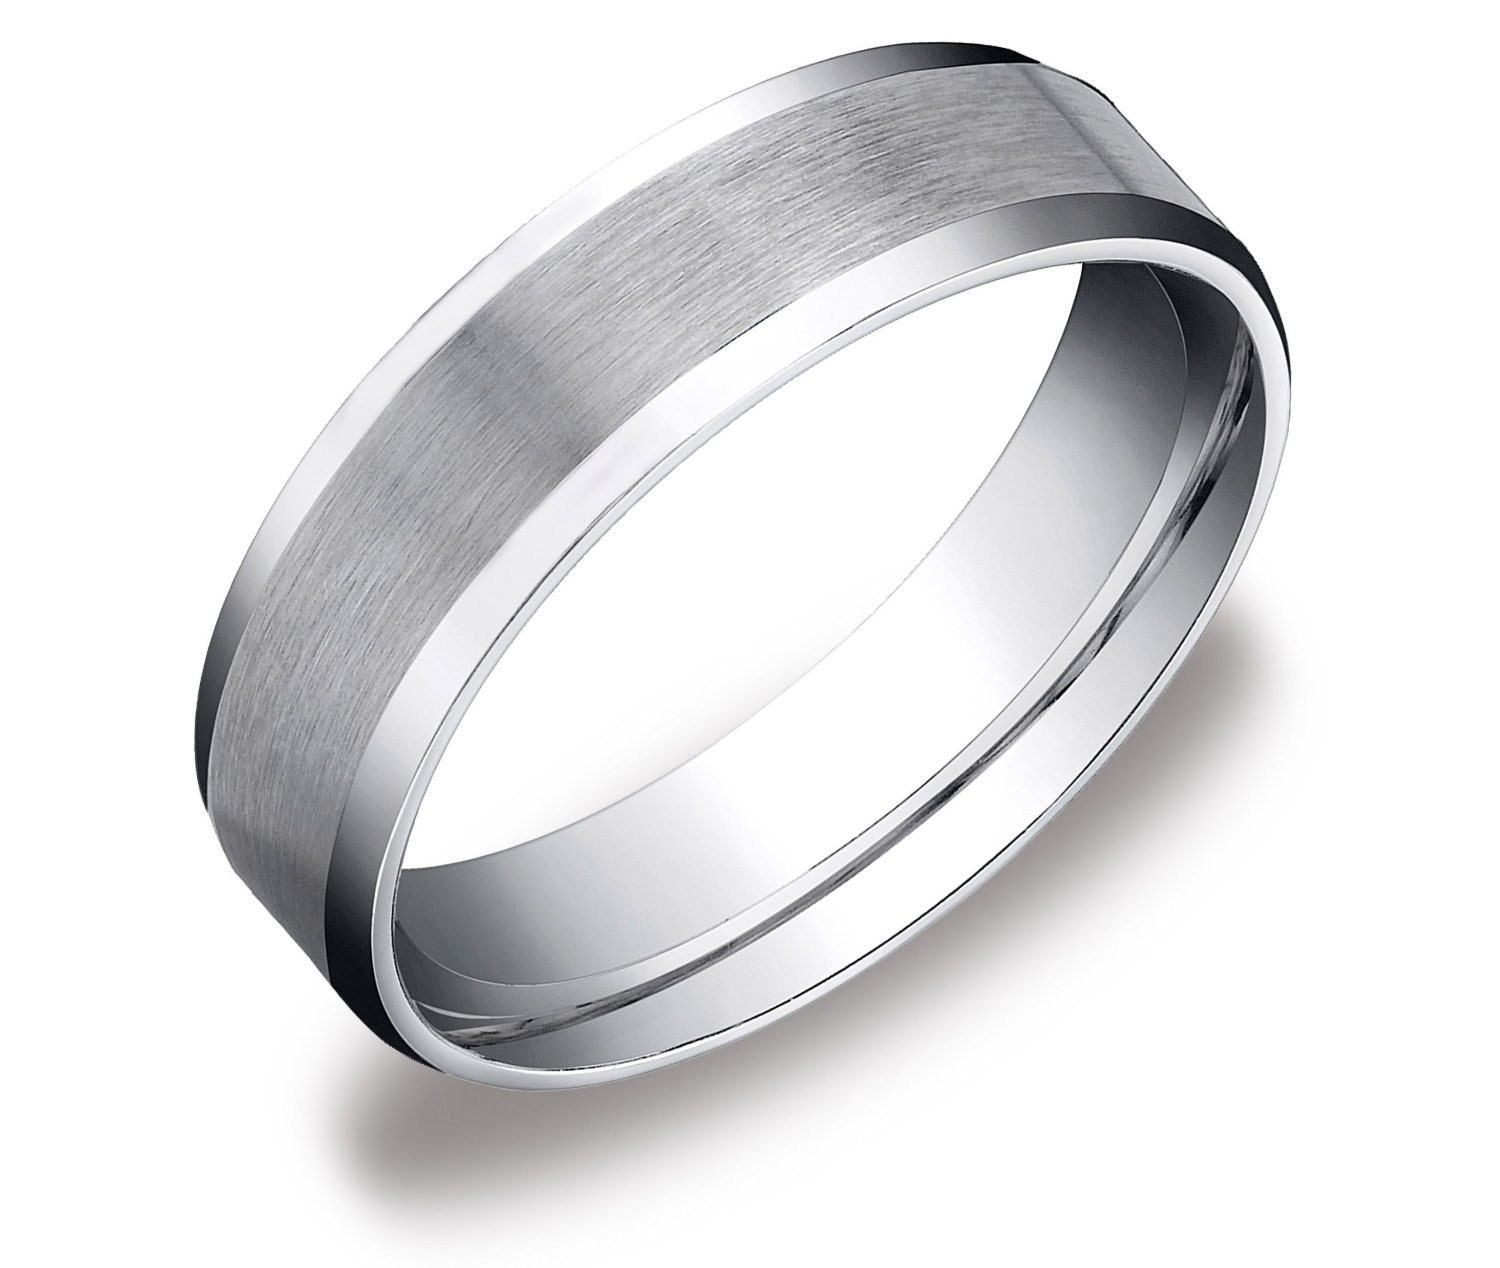 rings jm band milgrained engagement brushed edwards s jewelry platinum milgrain men mens archives wedding